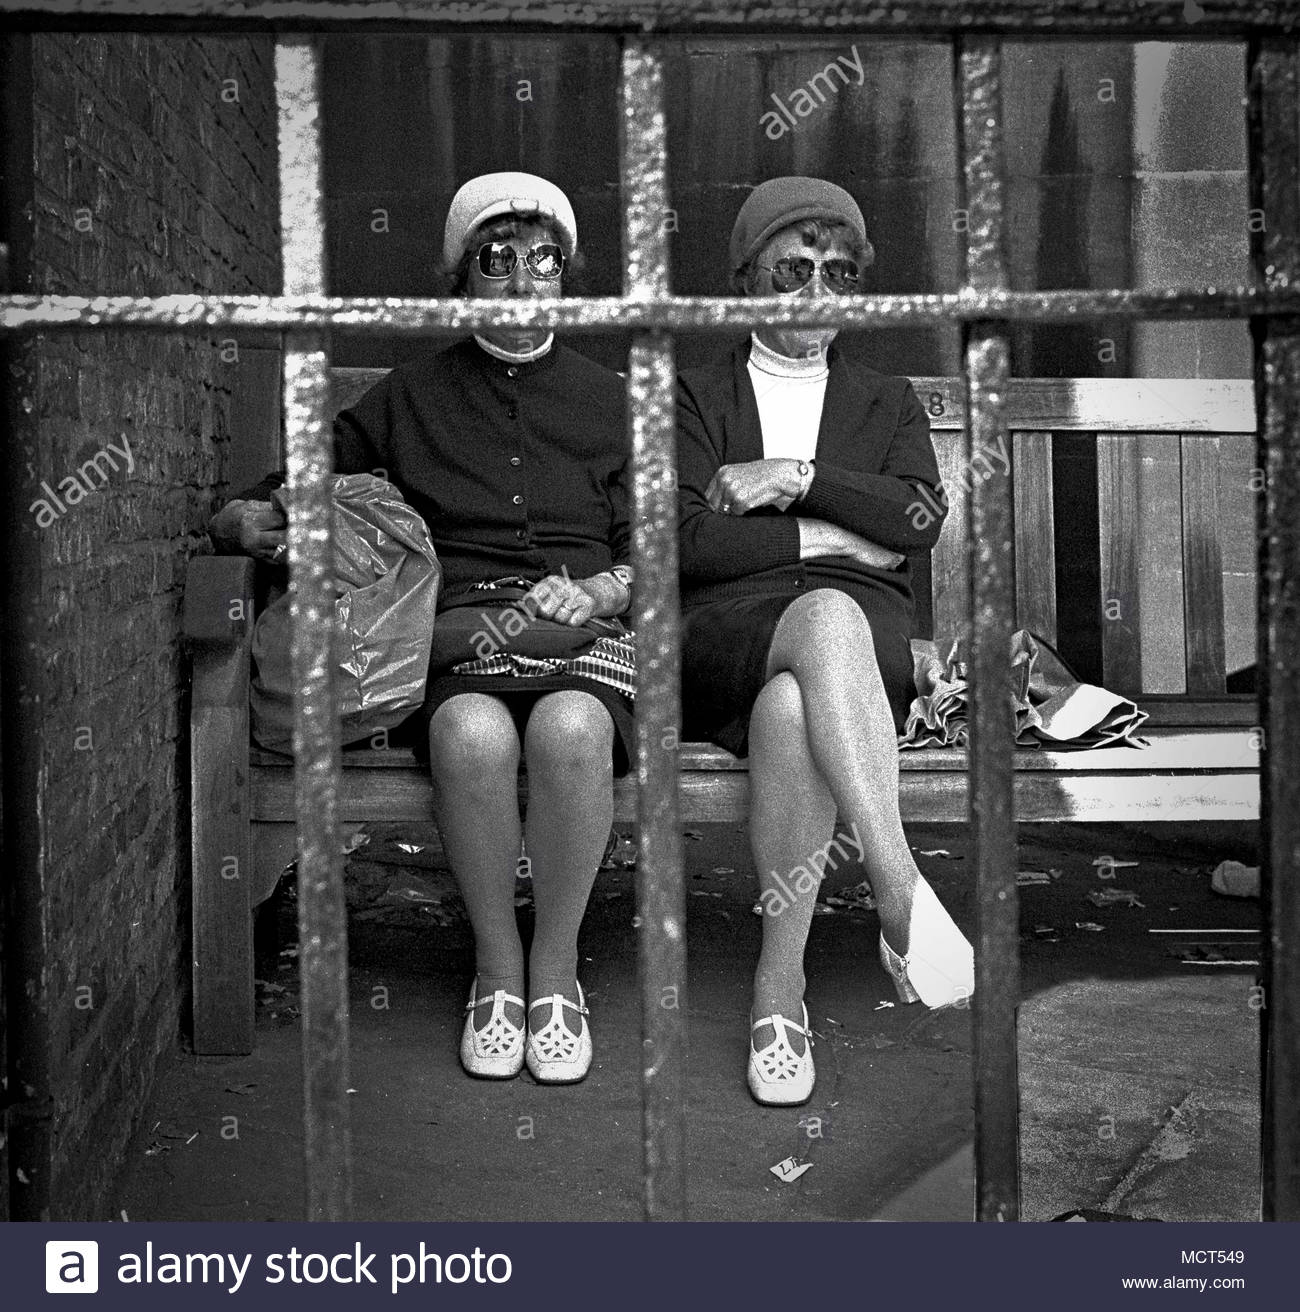 Two ladies (possibly sisters or twins) seated in a shady gated corner of York City Centre in Northern England, UK in  the 1970s. The females are wearing the same style of shoes and similar sunglasses.  photo DON TONGE photographer - Stock Image